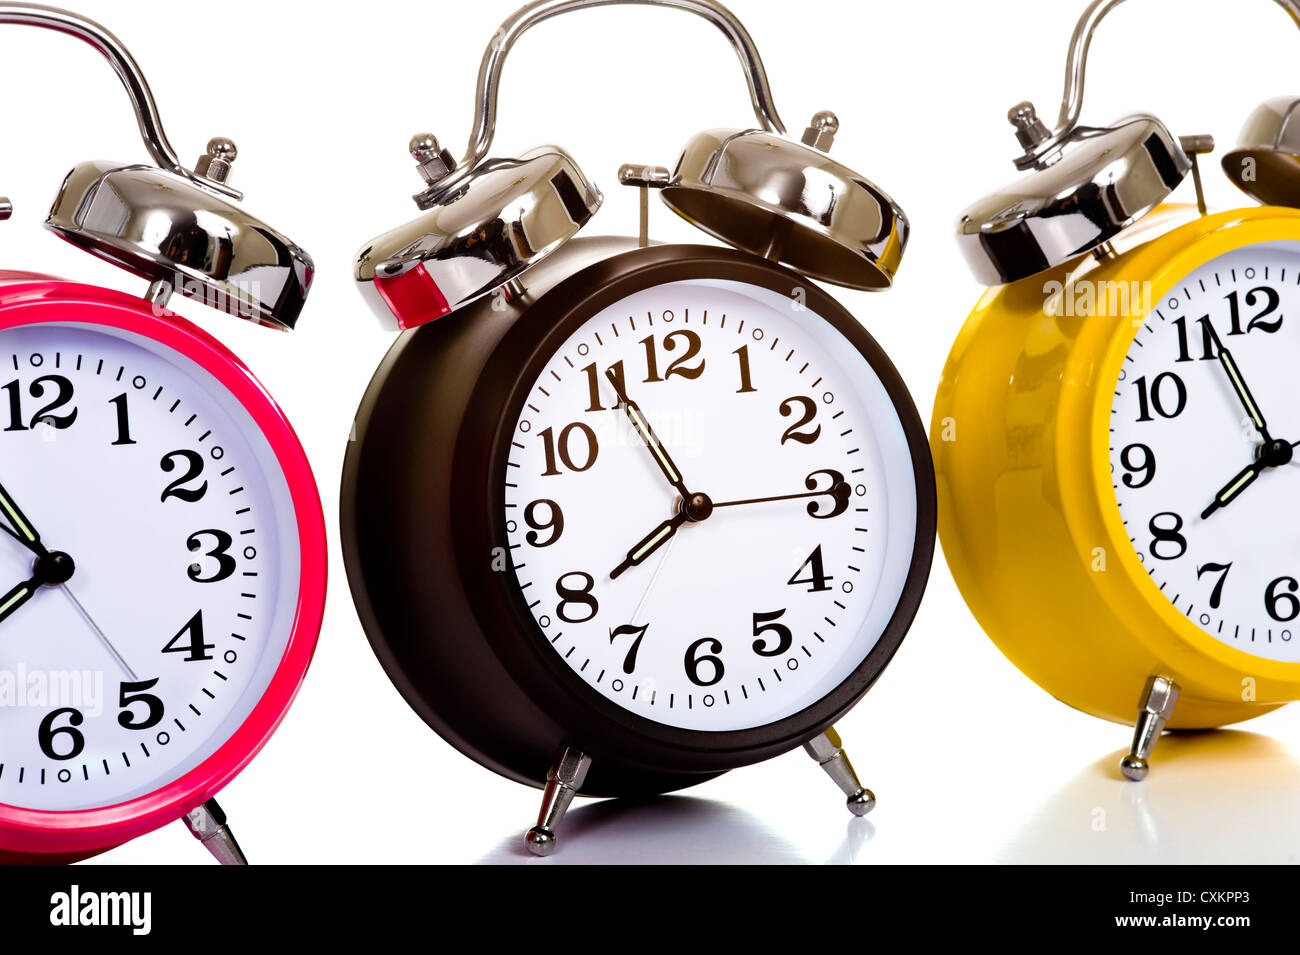 A group of colorful, traditional alarm clocks on a white background, time concept - Stock Image